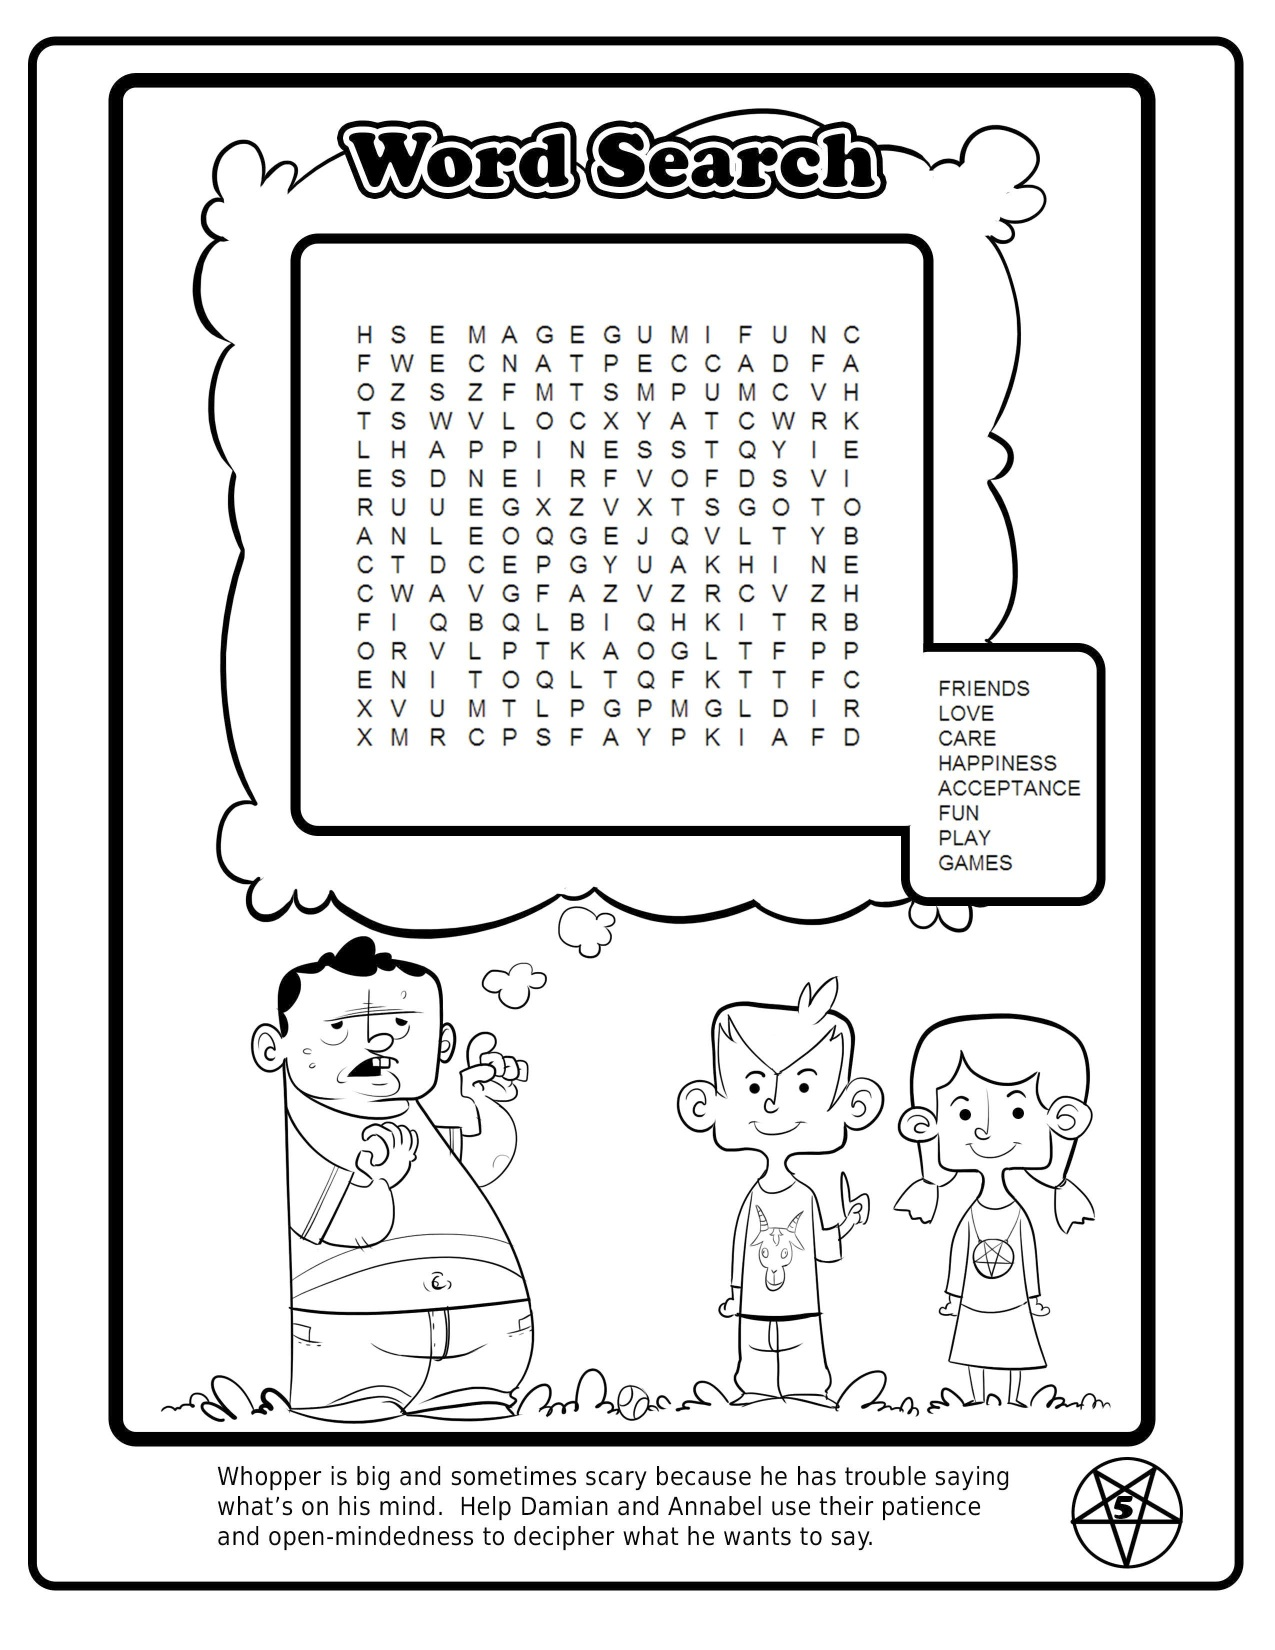 Judge Not Lest You Be Judged Will The Satanic Children S Activity Book Be Banned From Florida